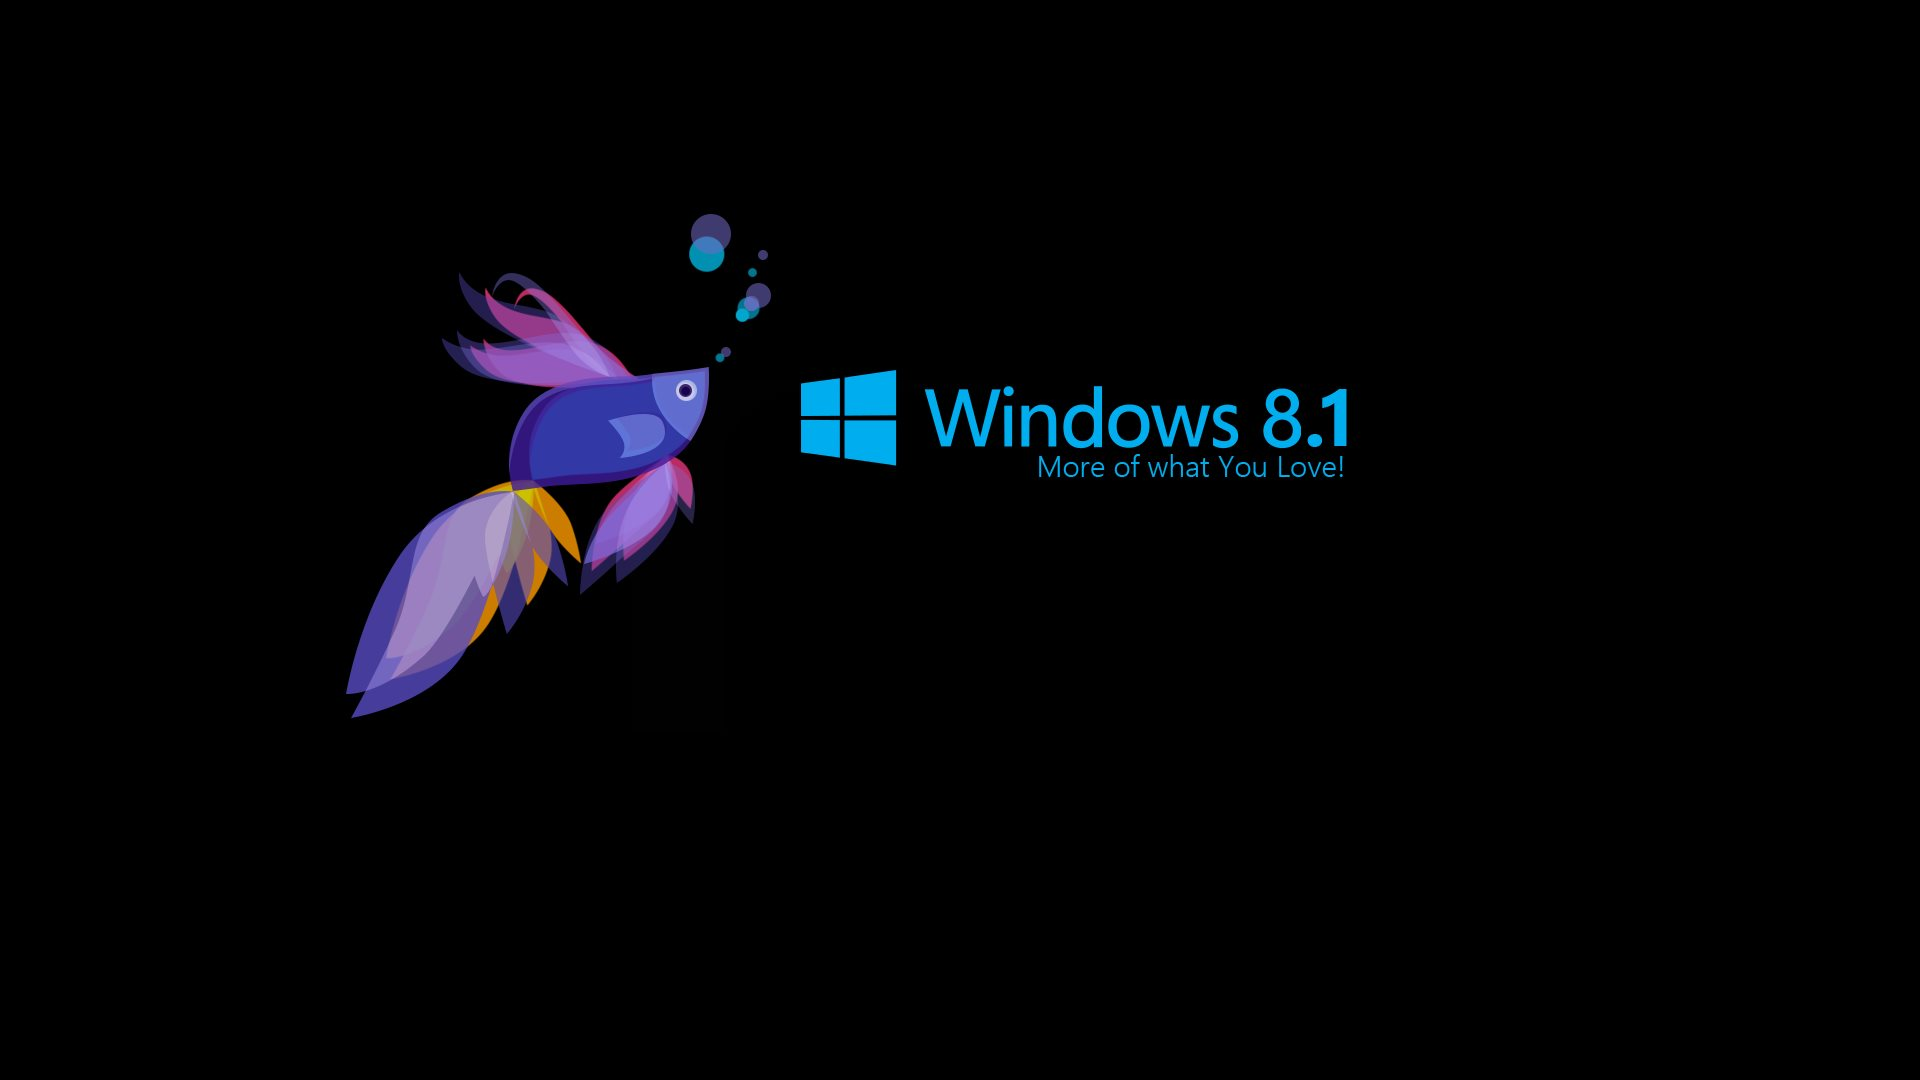 Wallpaper Windows 8 1 1920×1080